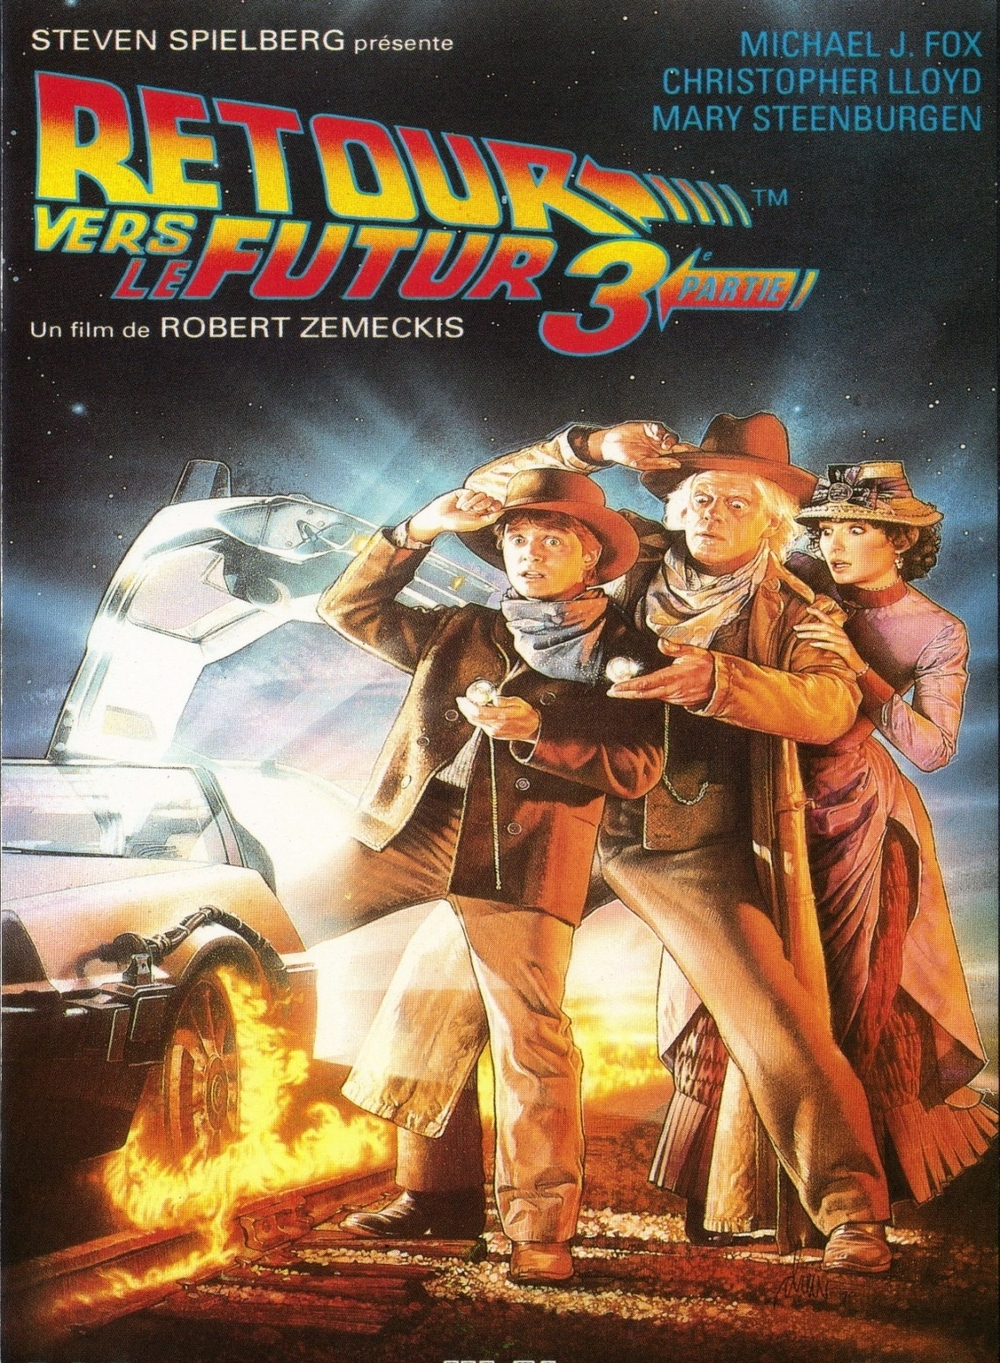 Retour Vers Le Futur 3 Streaming Vf : retour, futur, streaming, Stuff